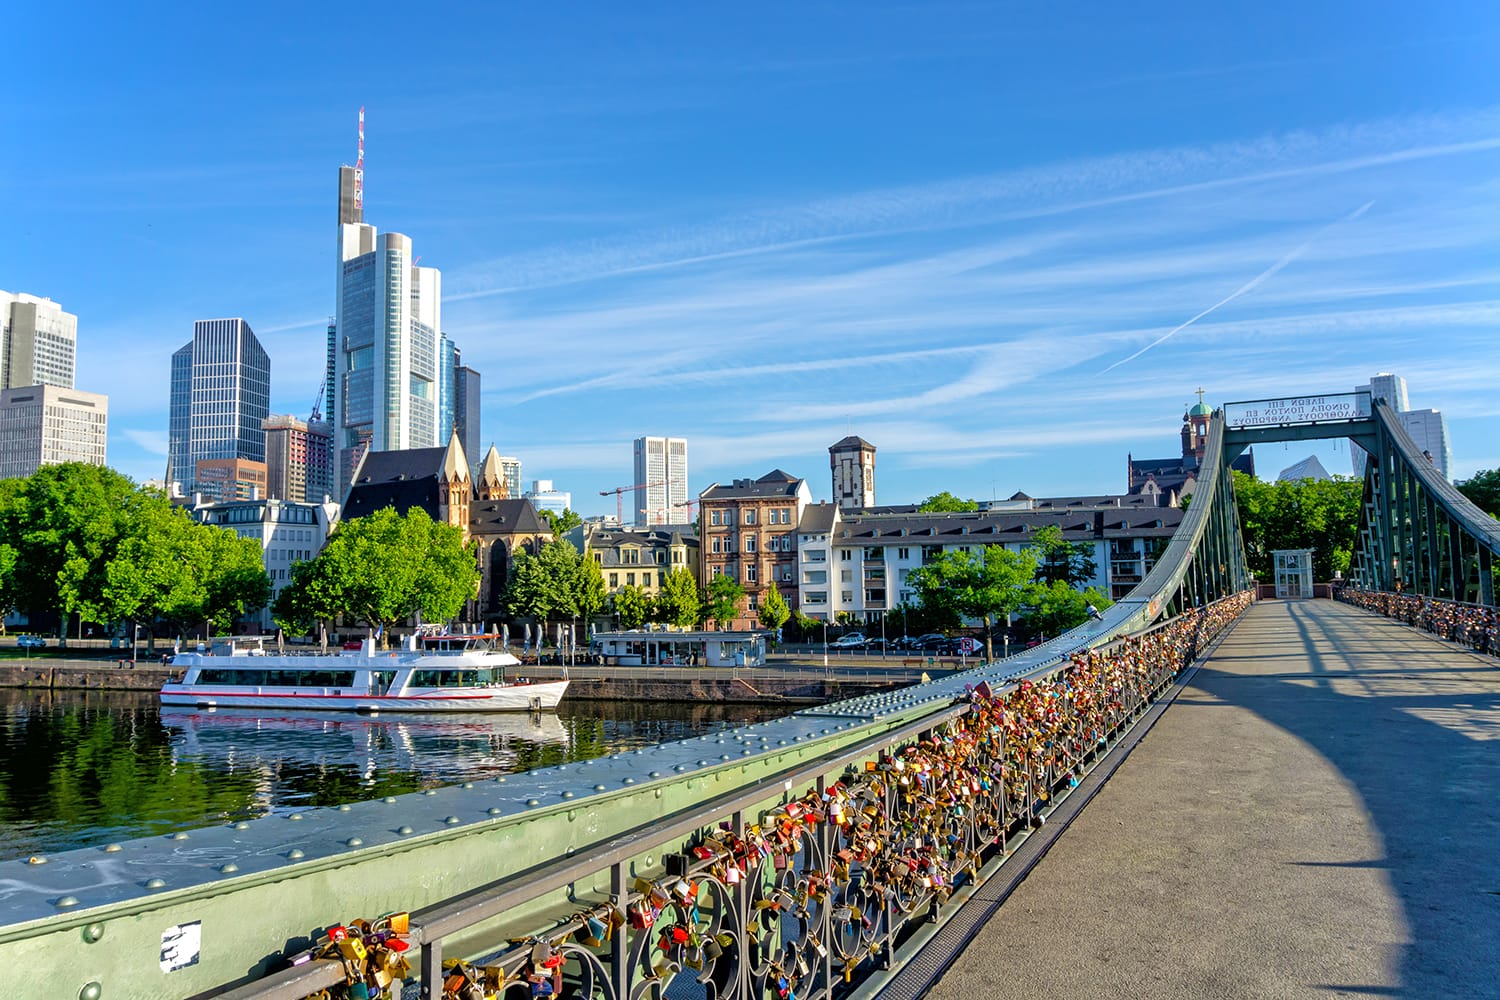 Frankfurt financial district skyline and bridge Eiserner Steg on a sunny day, Germany